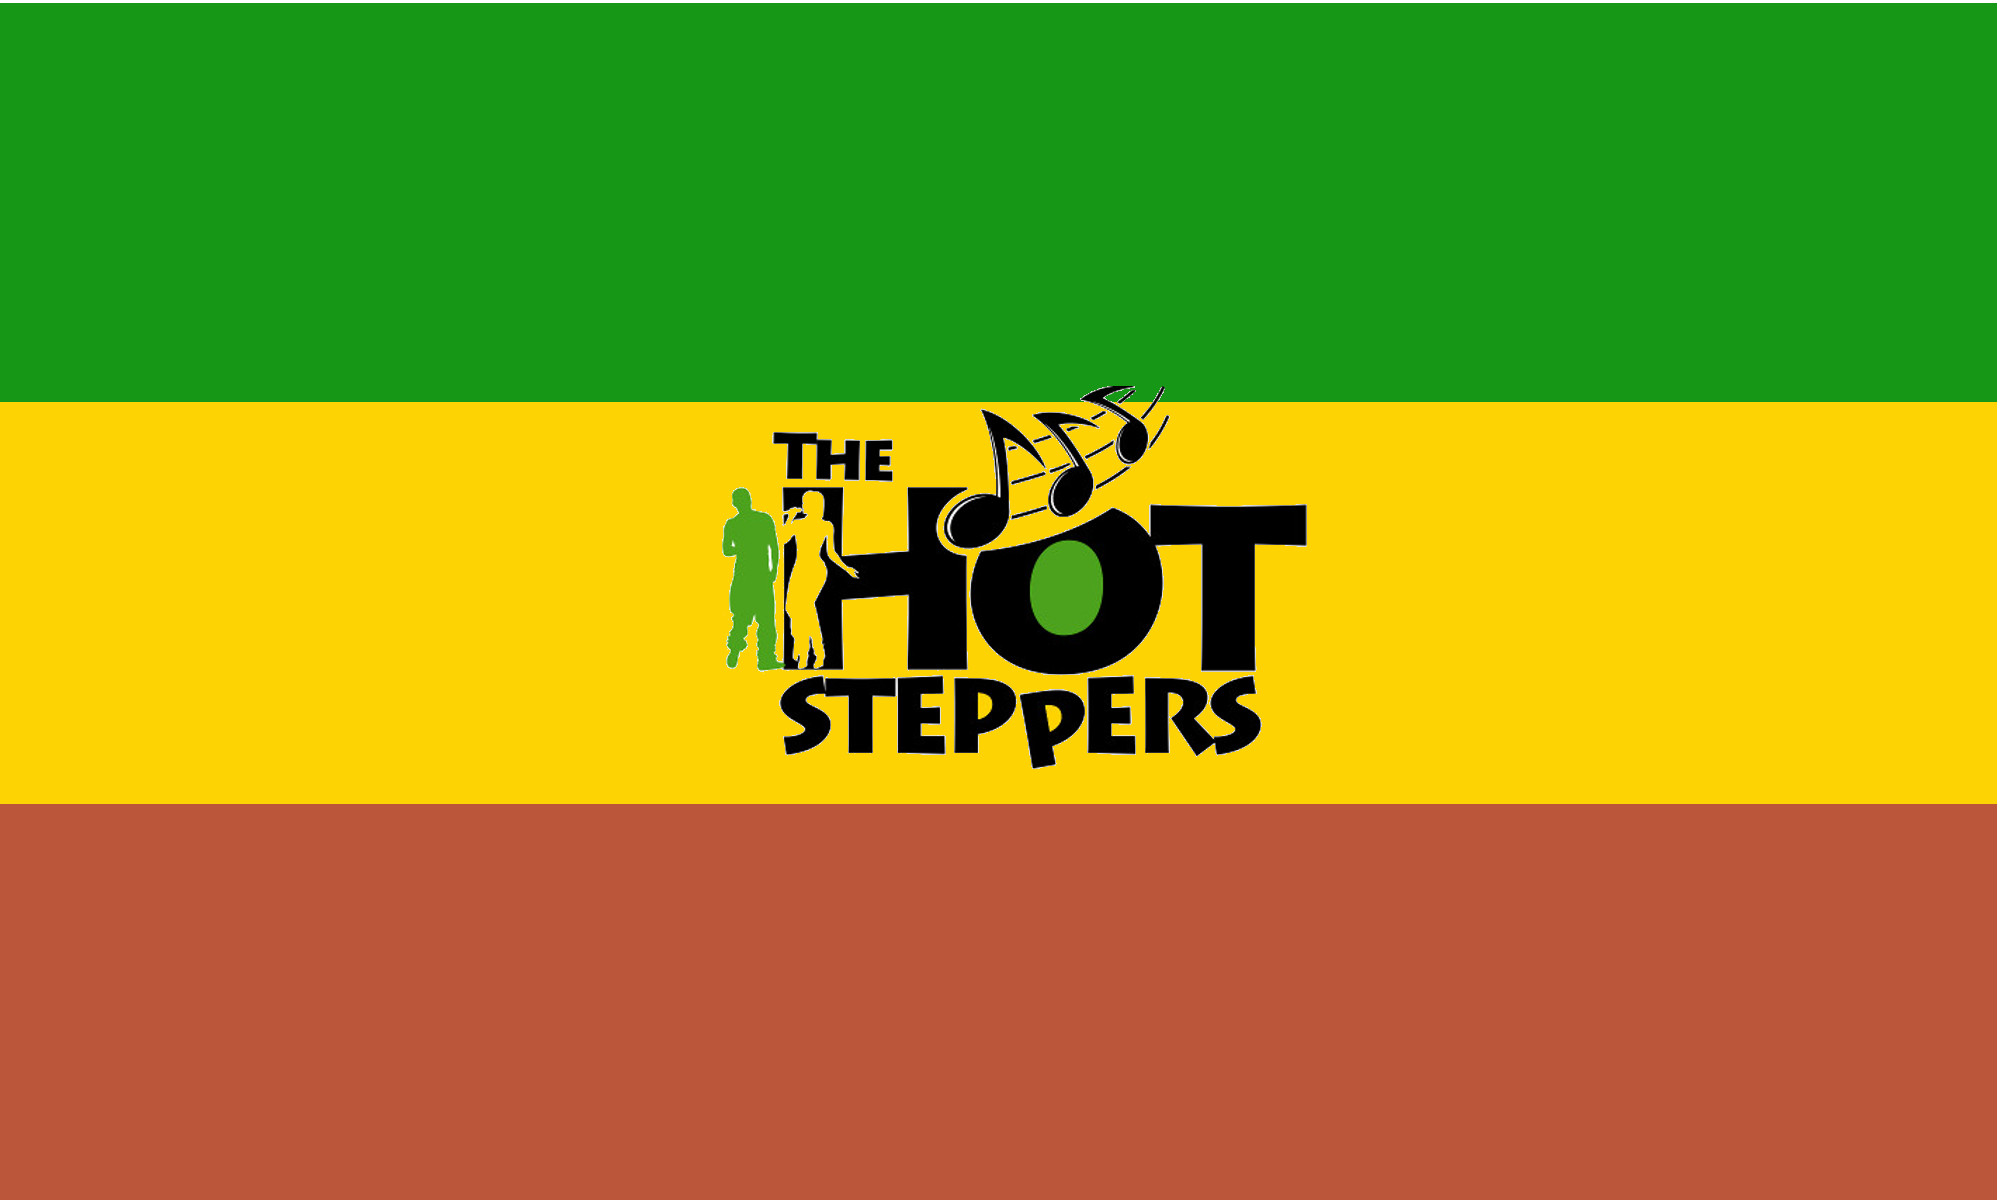 The HotSteppers